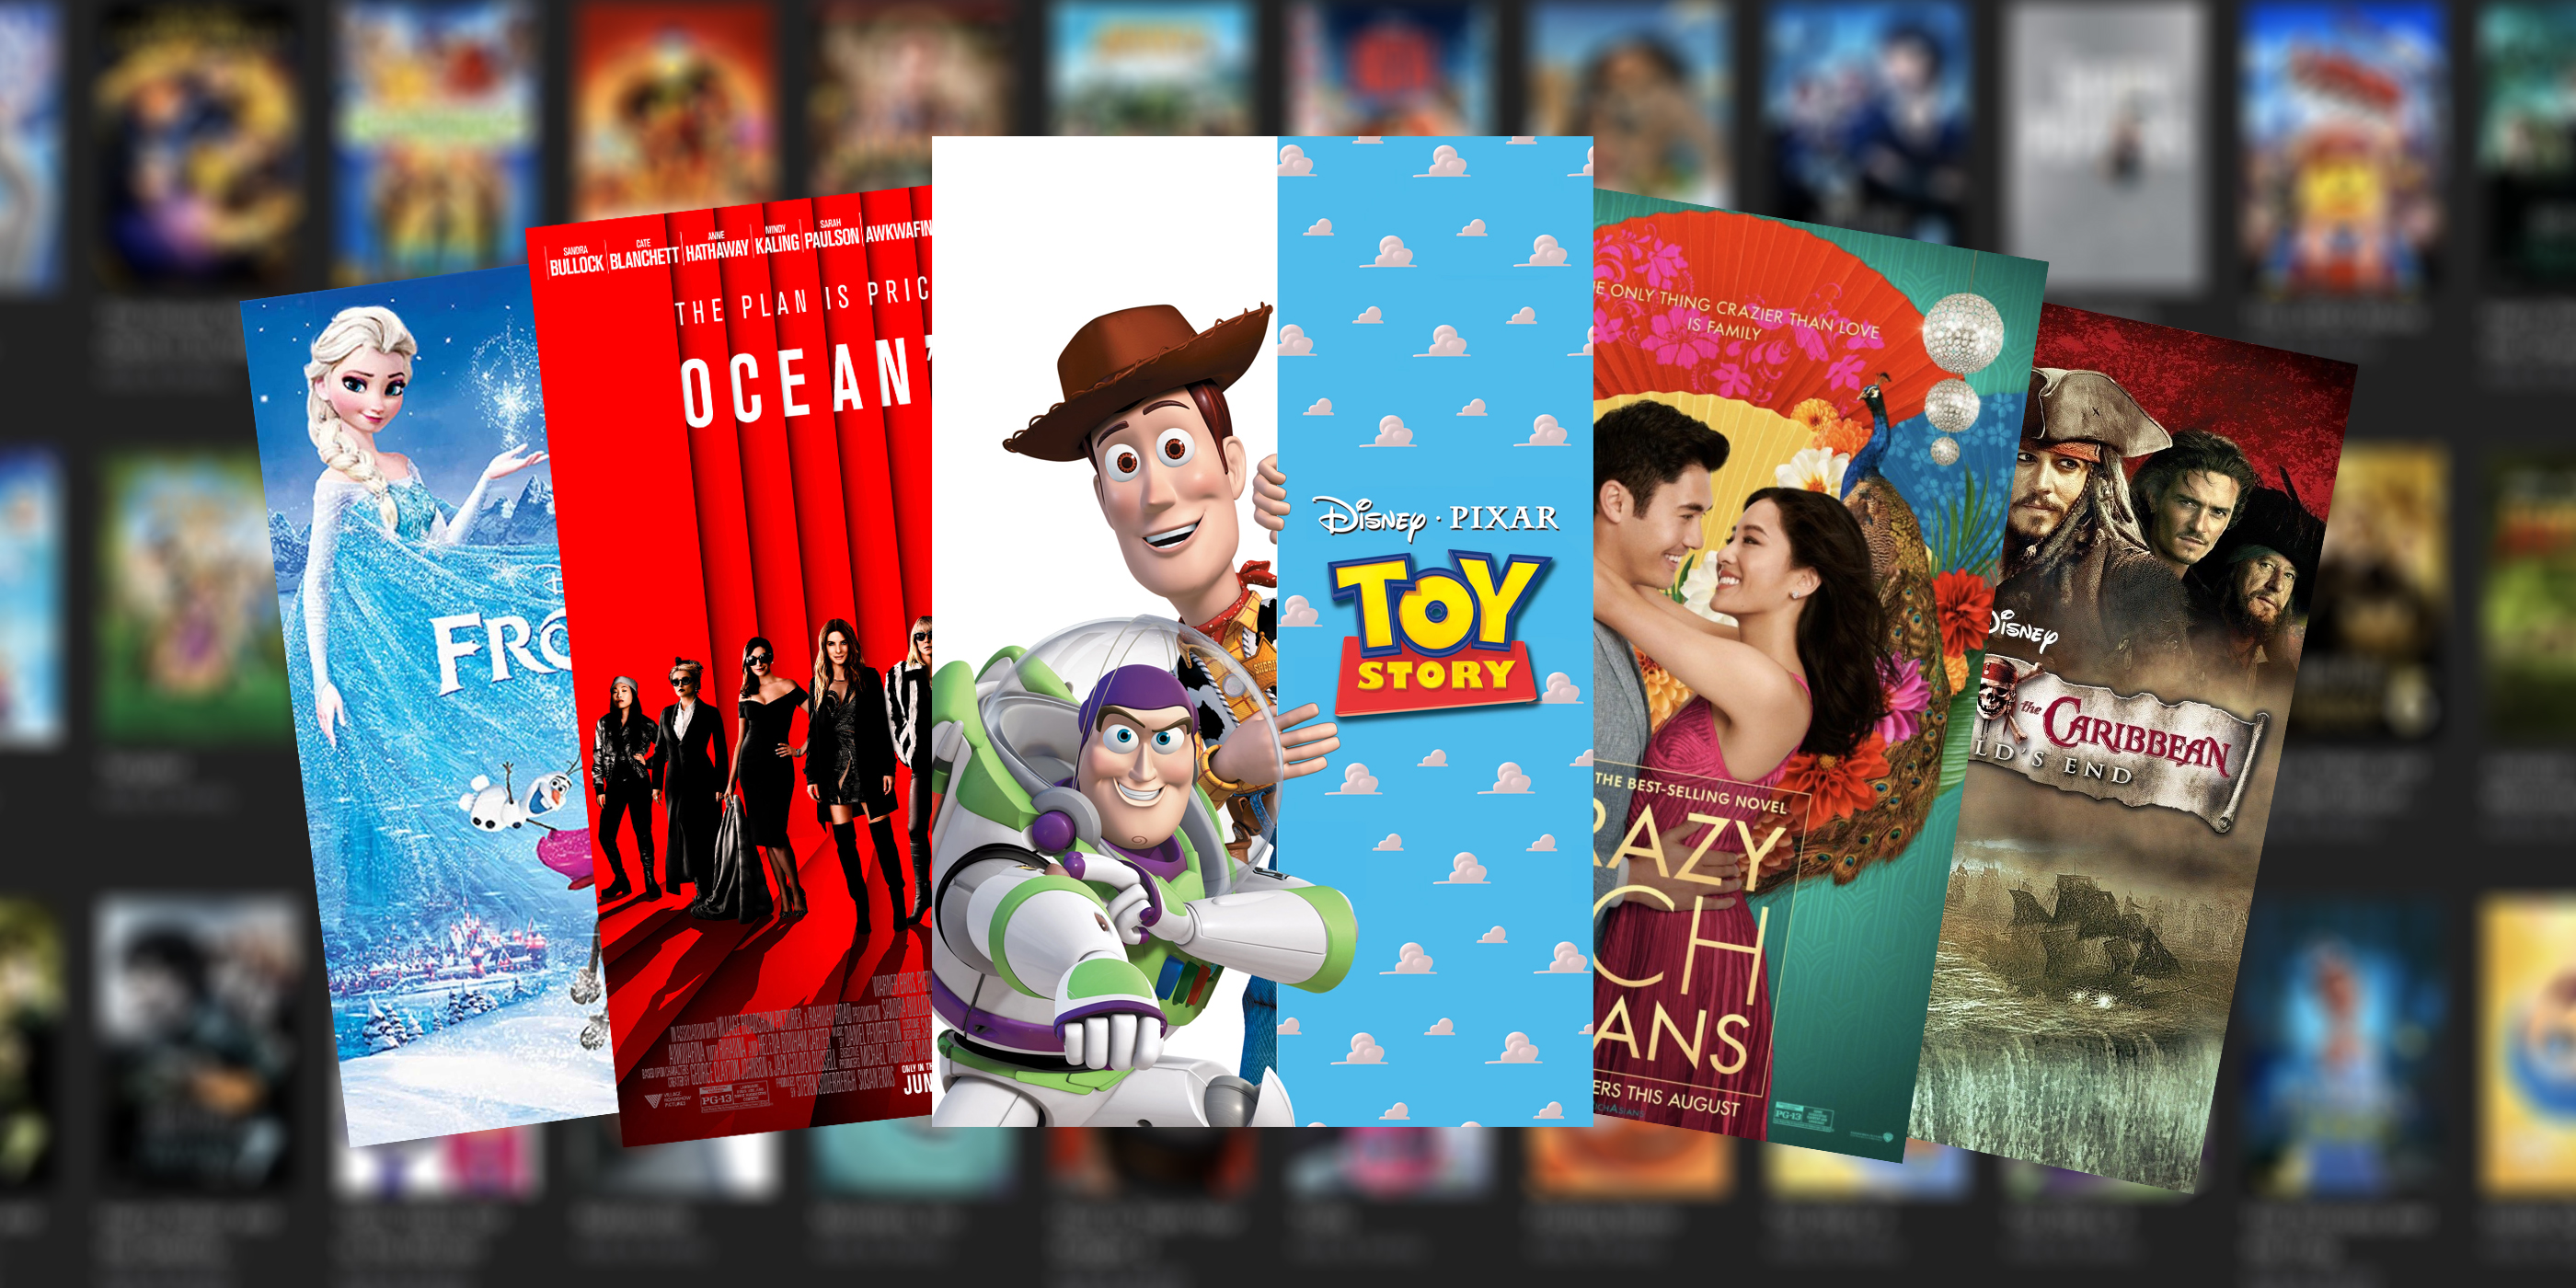 This week's best iTunes movie deals: Disney sale from $10, Action films $5, more